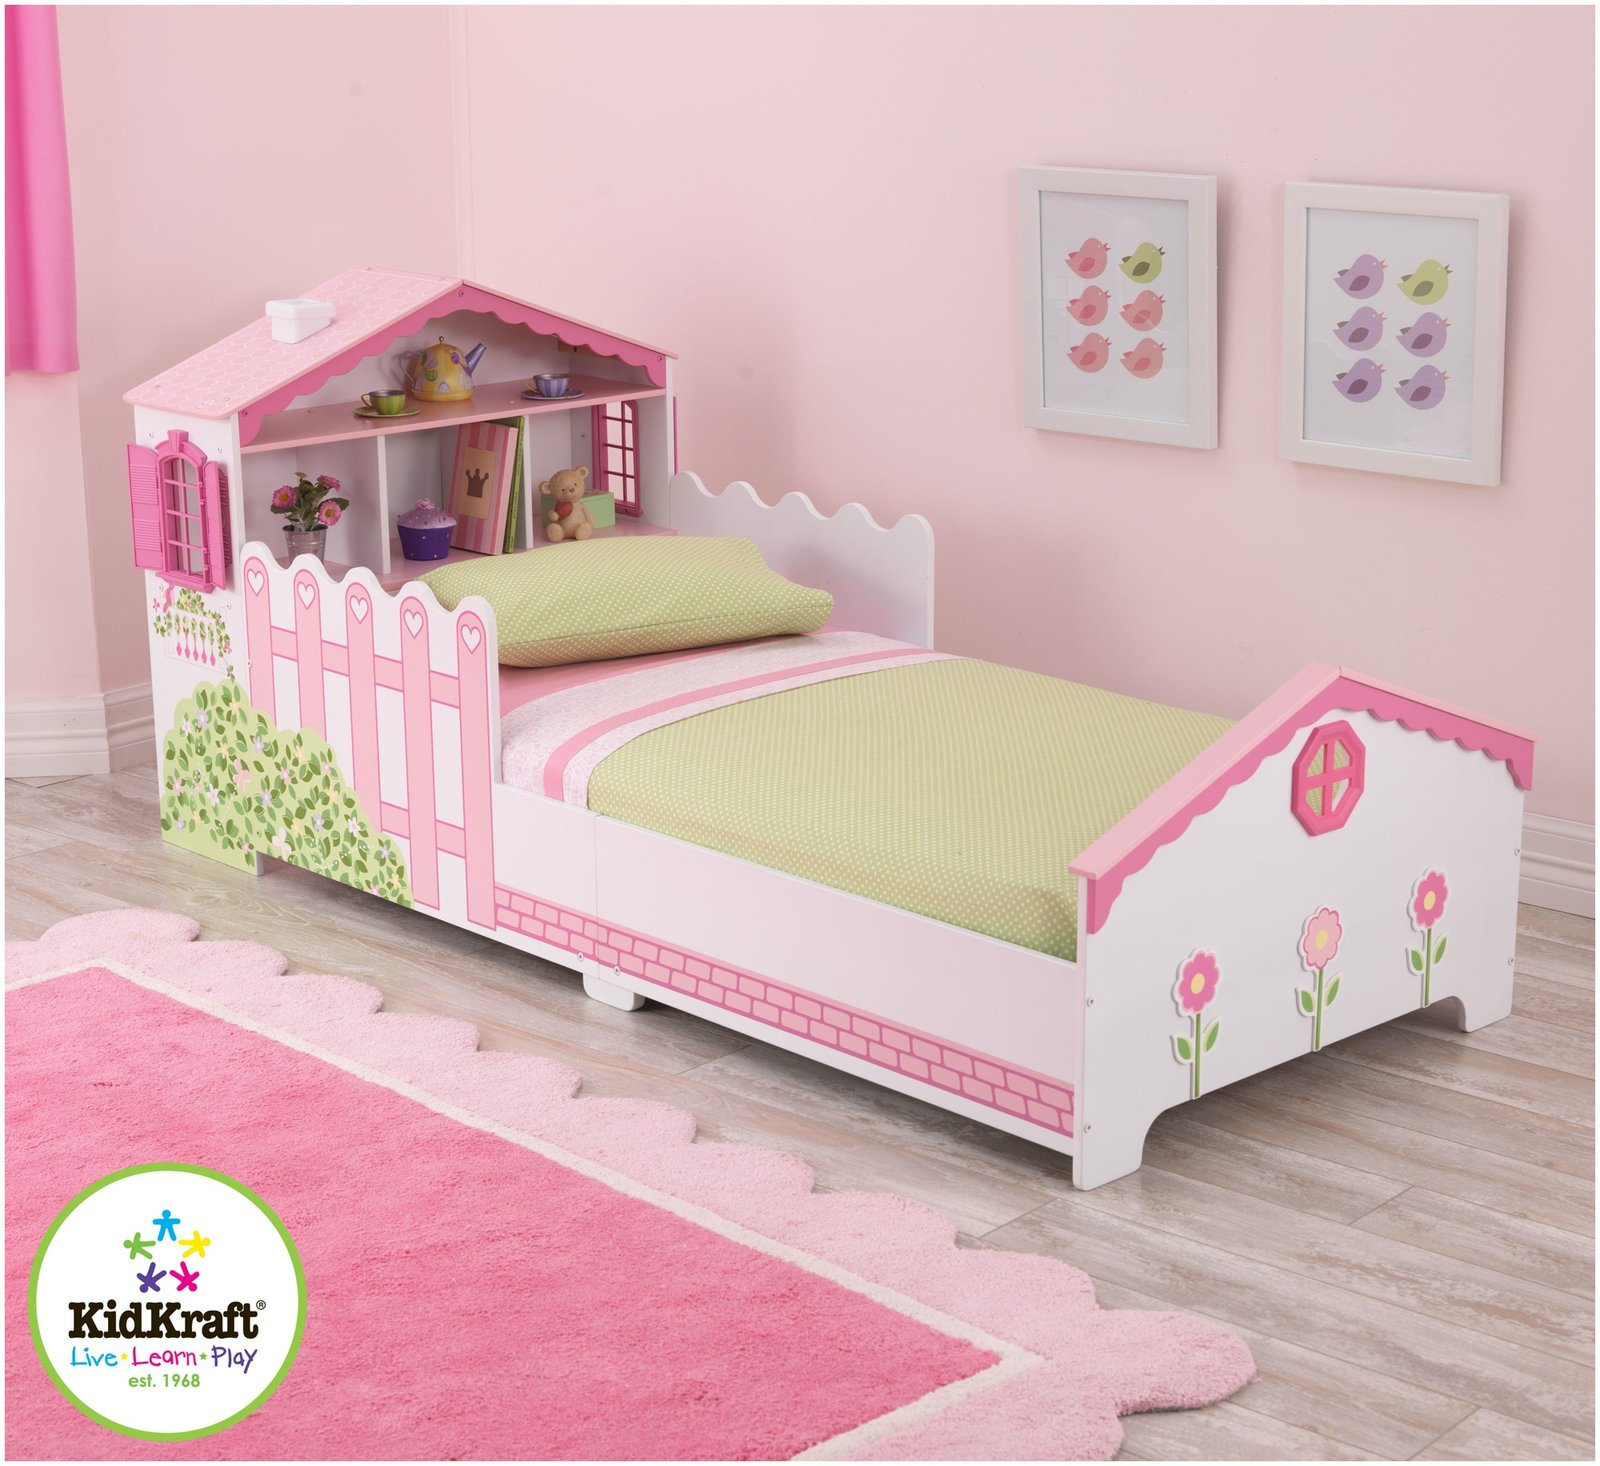 Dollhouse Toddler Bed By Kidkraft With Wood Construction